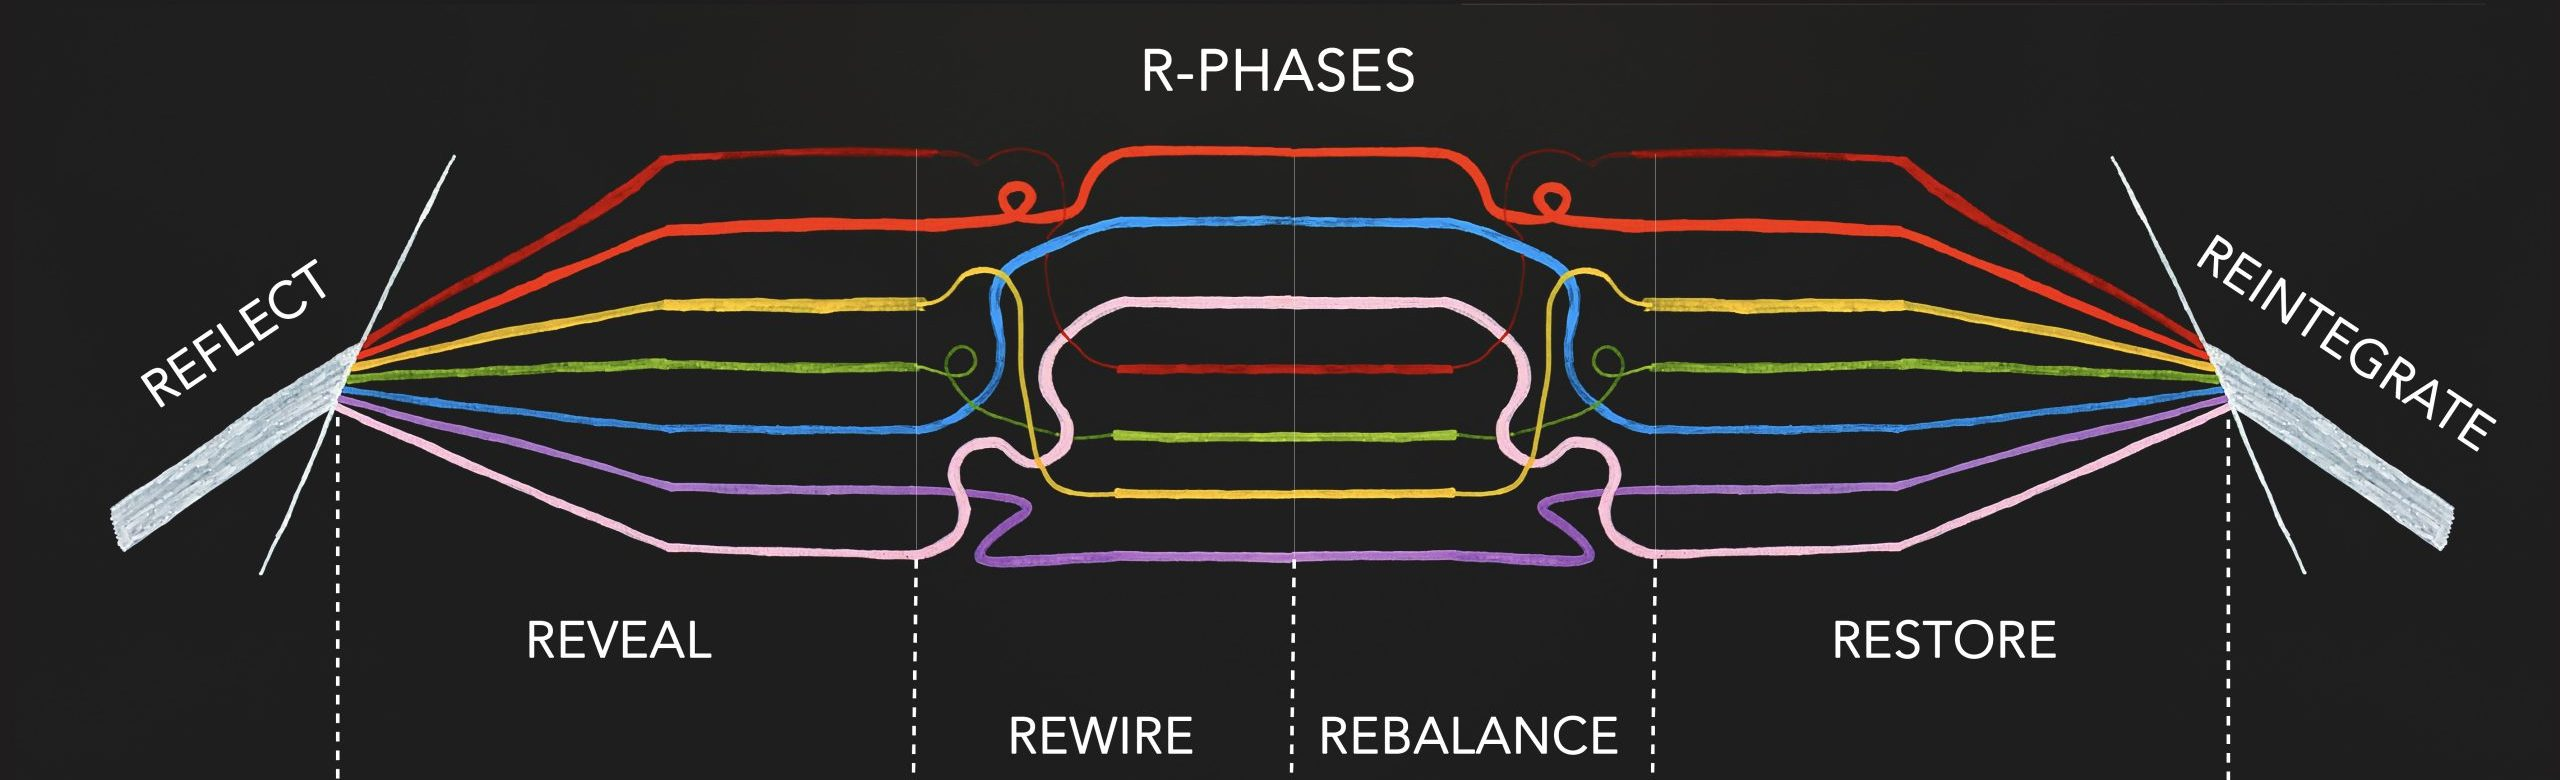 R-Phases Banner